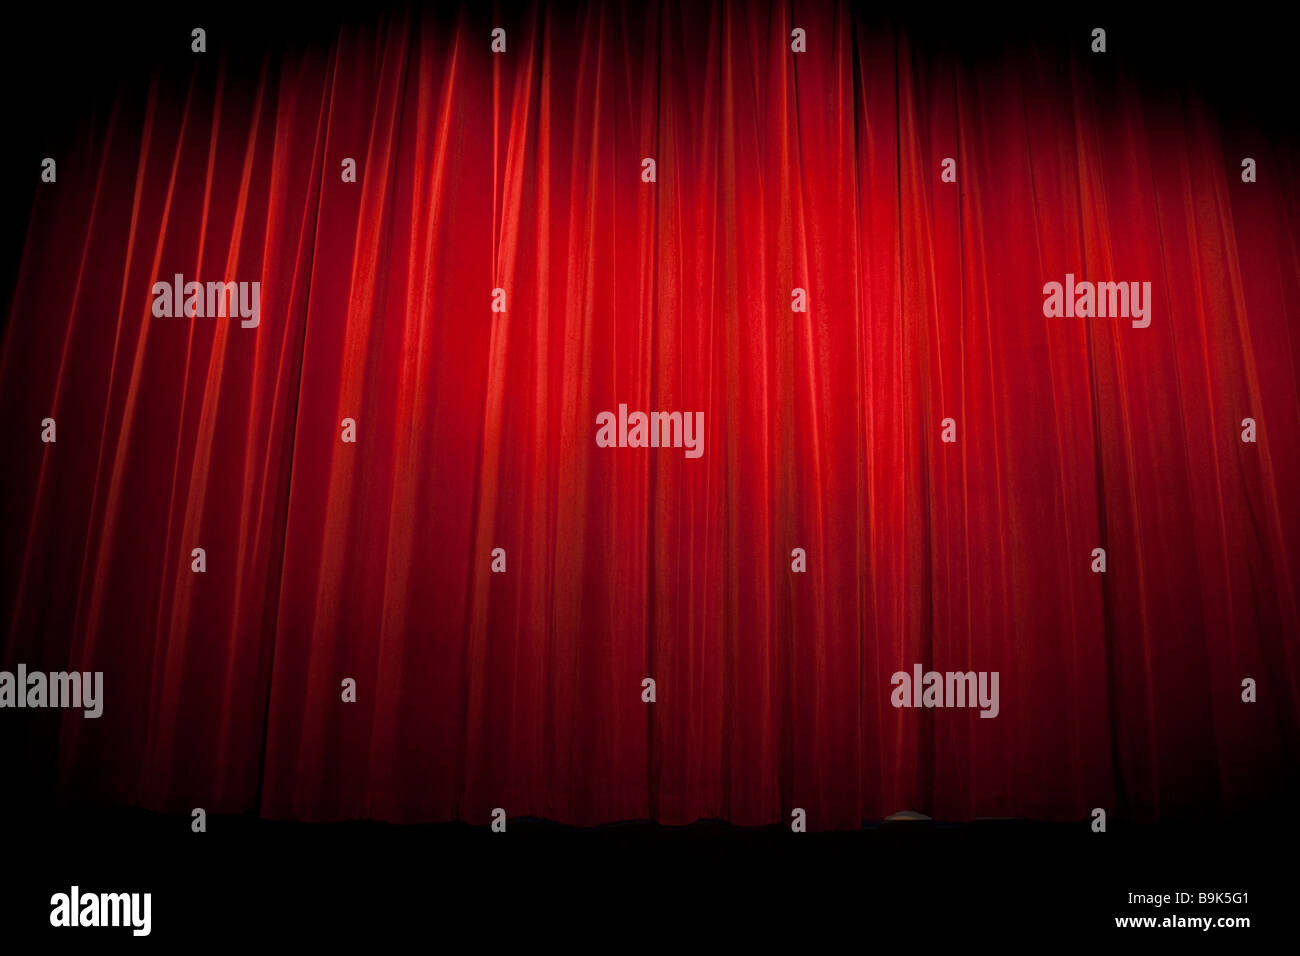 Theatre Curtains Stock Photos Images